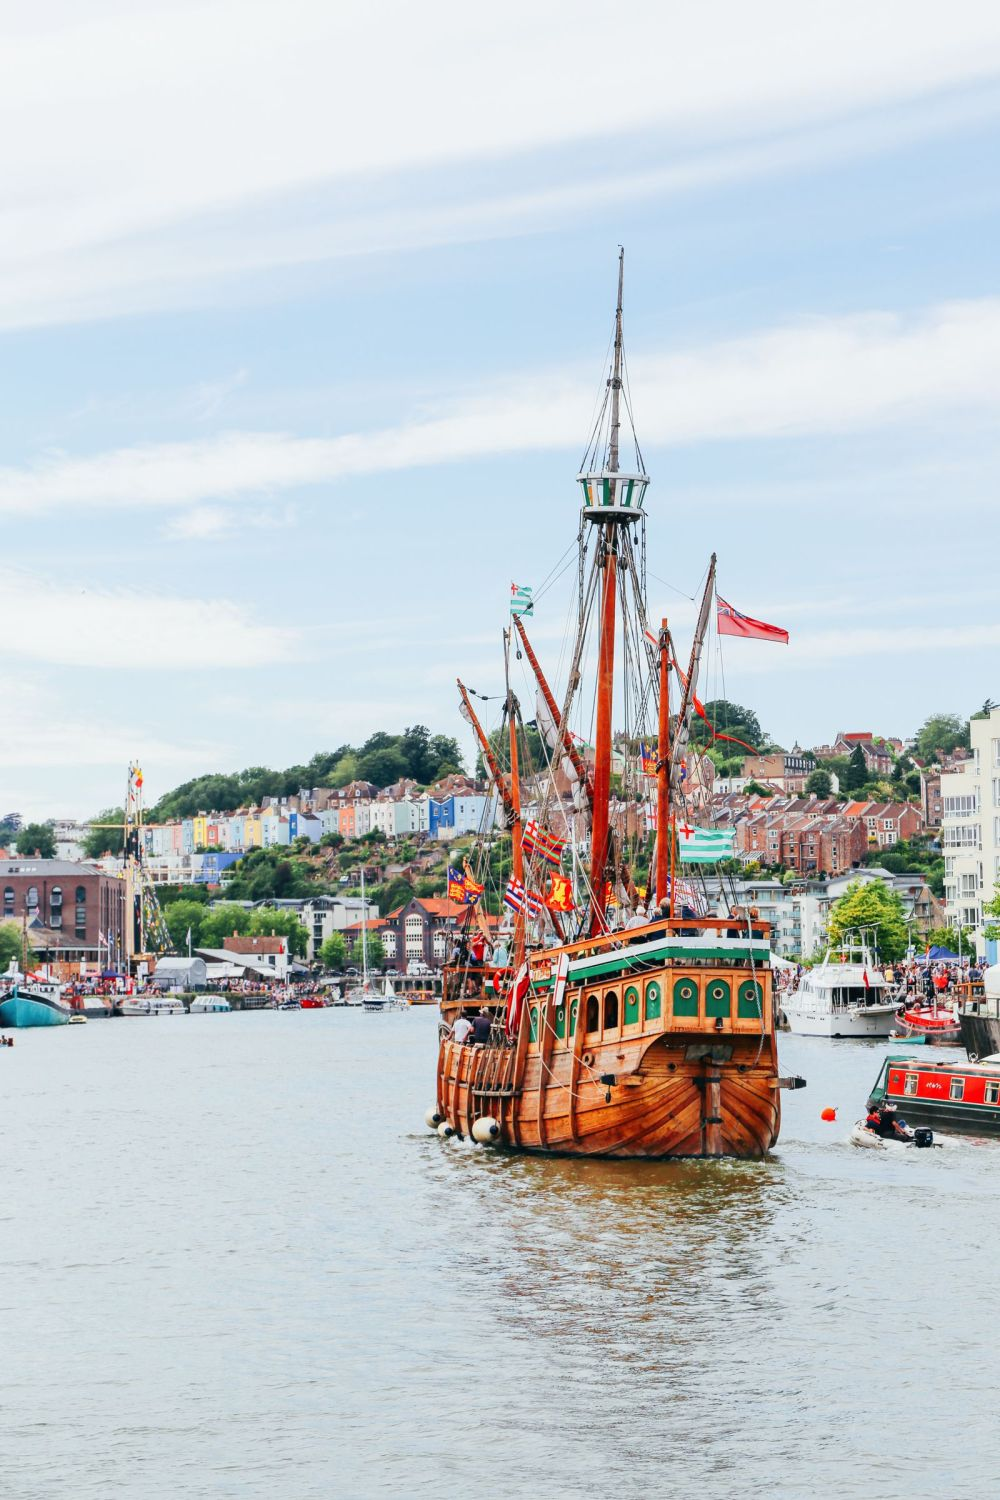 The Harbour Festival, Banksy, Steam Trains & The Girl With The Pierced Ear Drum... in Bristol, UK (43)